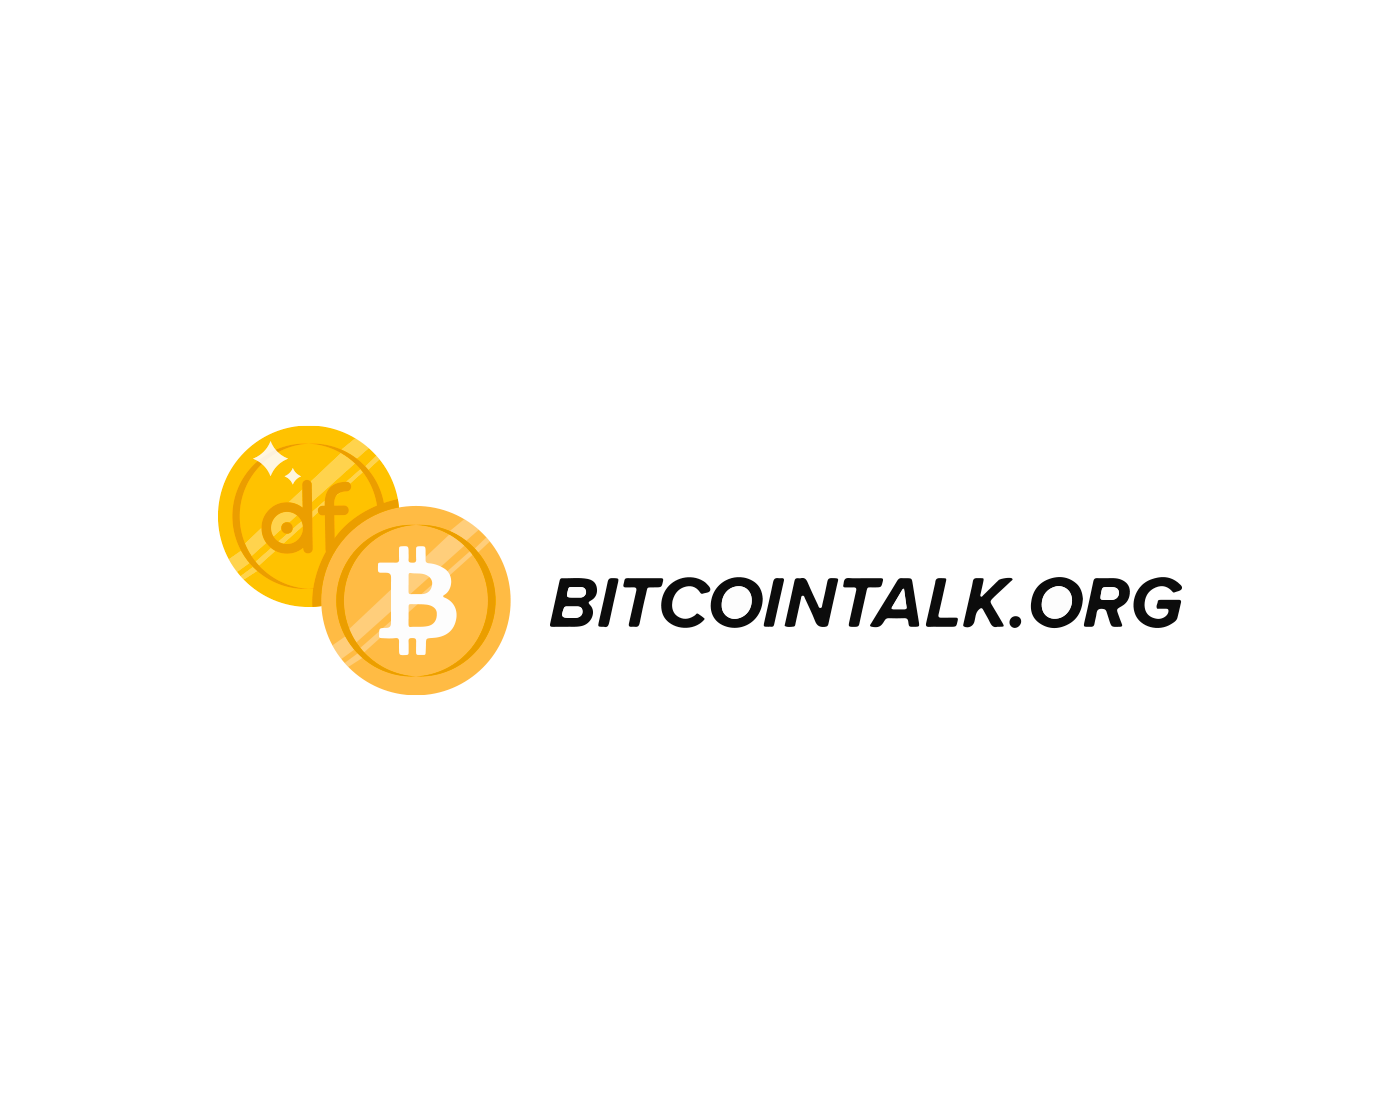 Bitcointalk - FINISHED